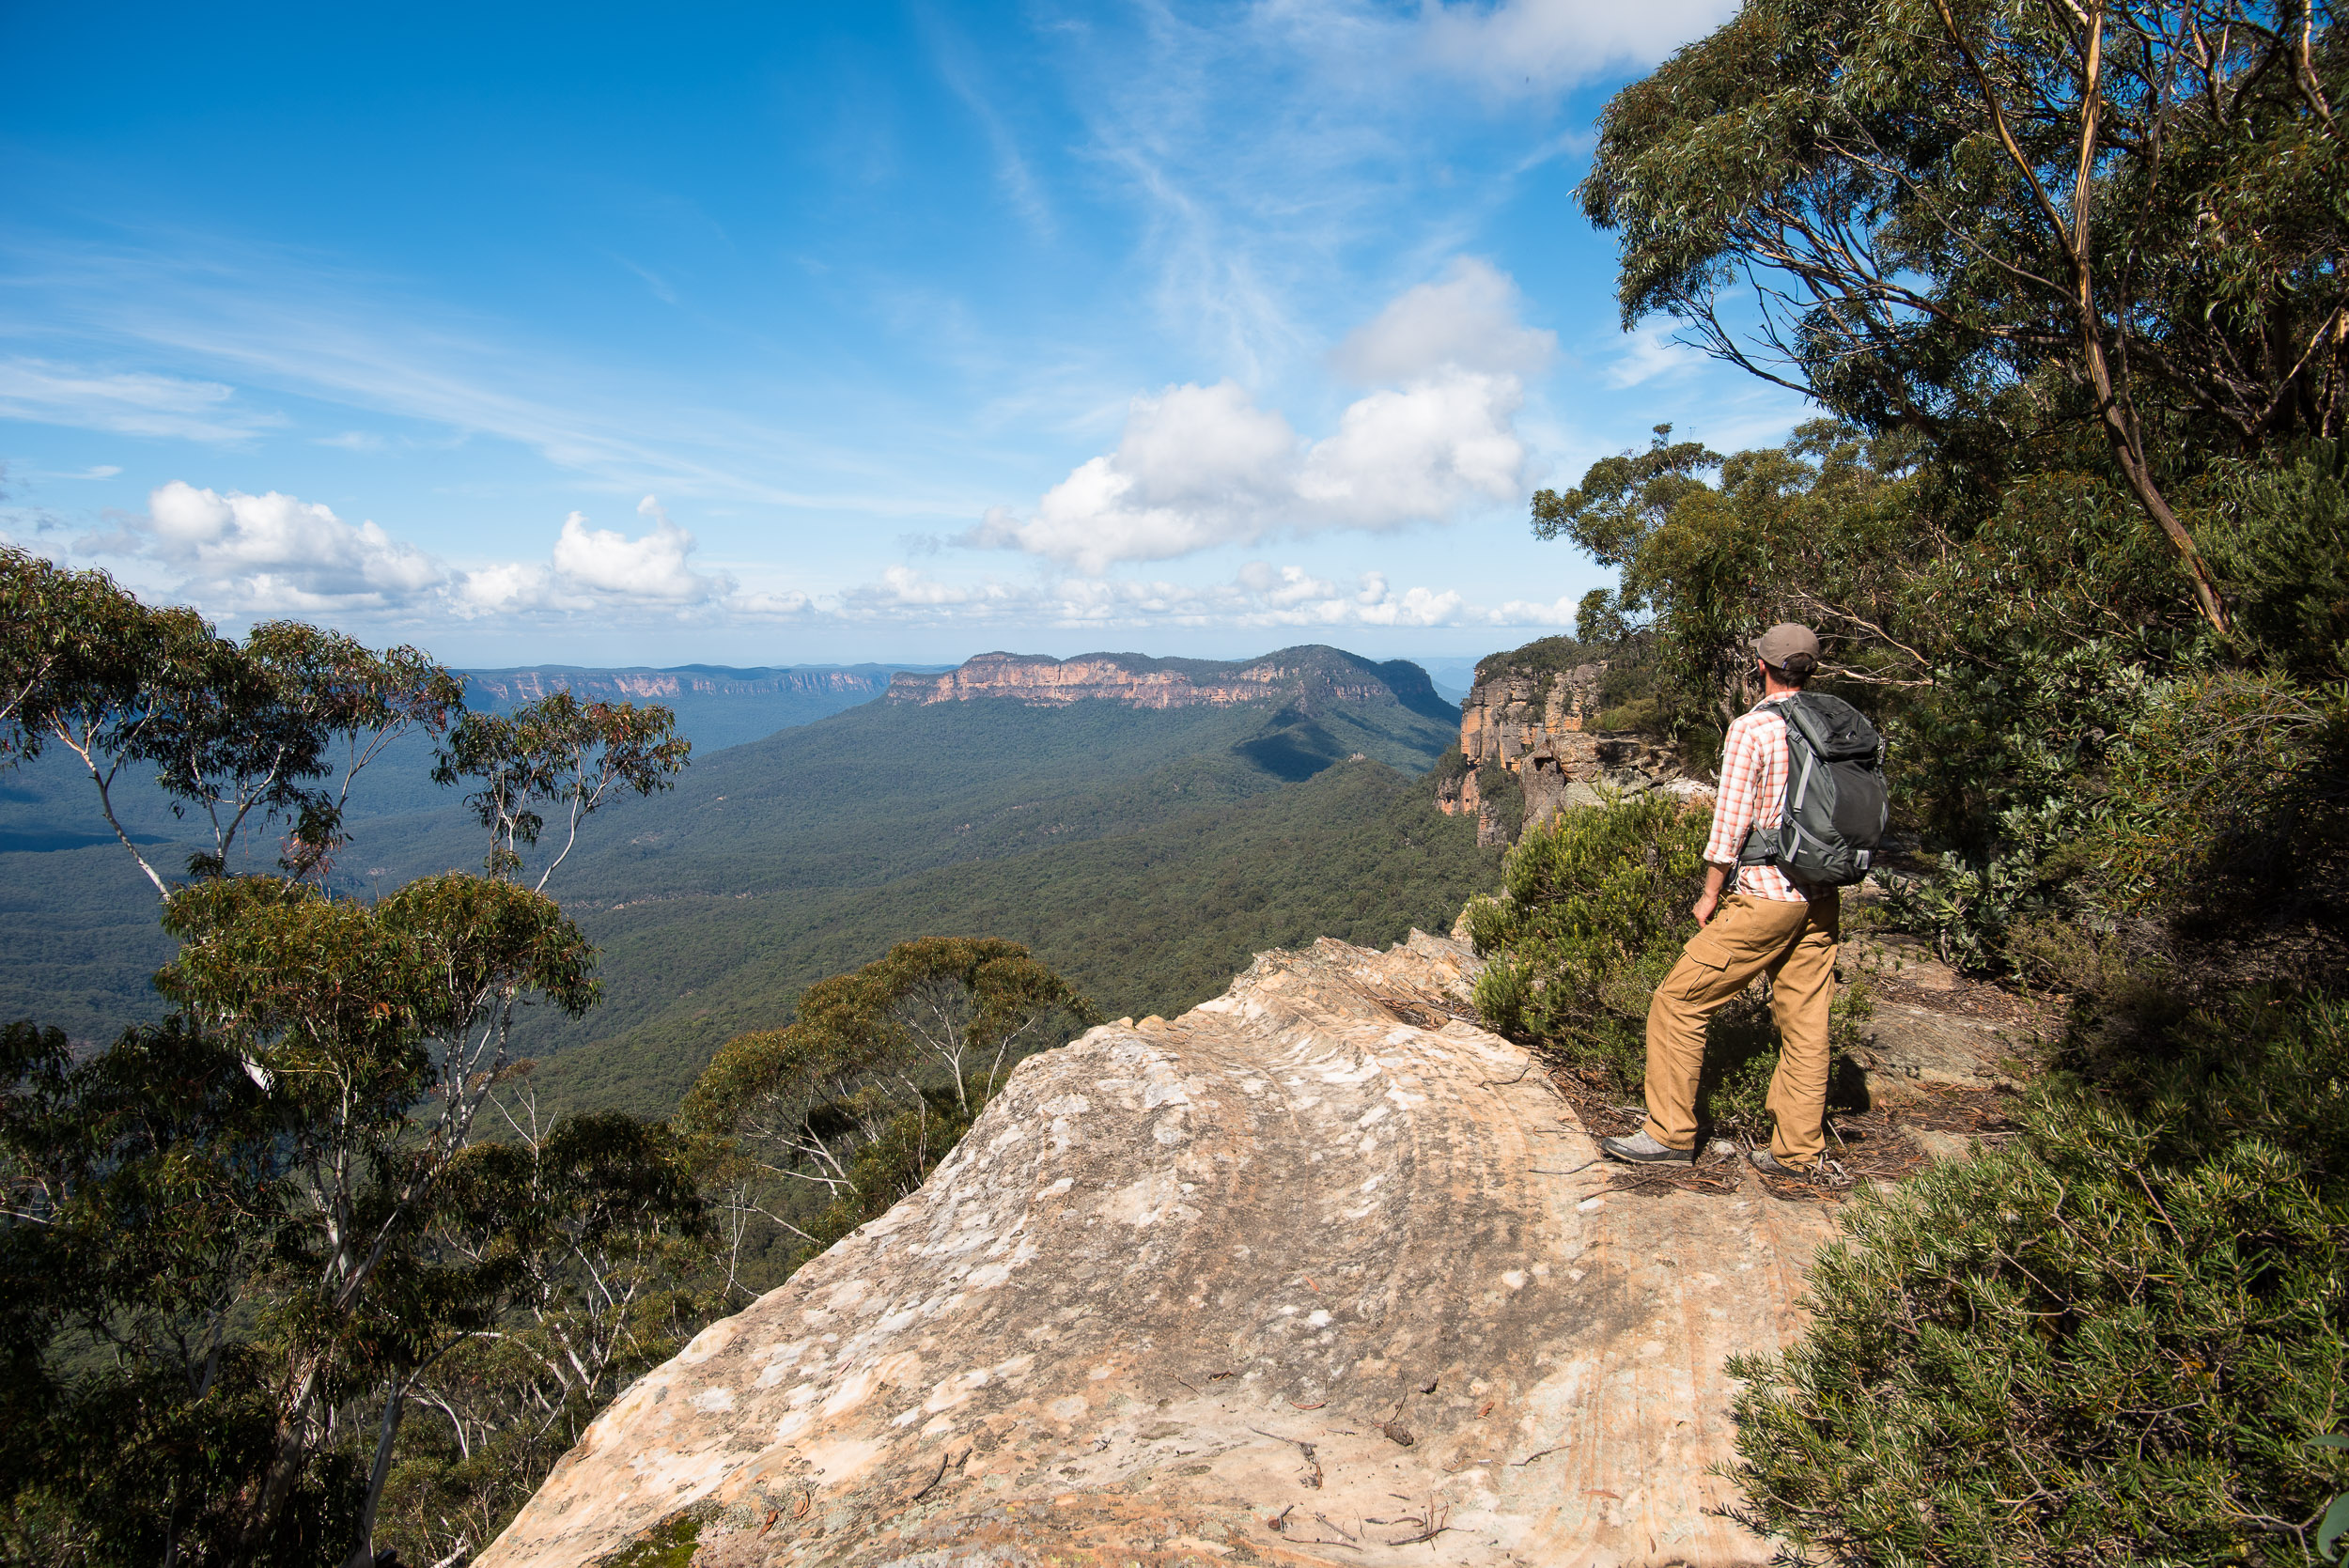 Thomas soaking in the views (and setting up a photo for his stock agency), while on a family picnic on Narrowneck. Mt Solitary in the distance, Blue Mountains, Australia.